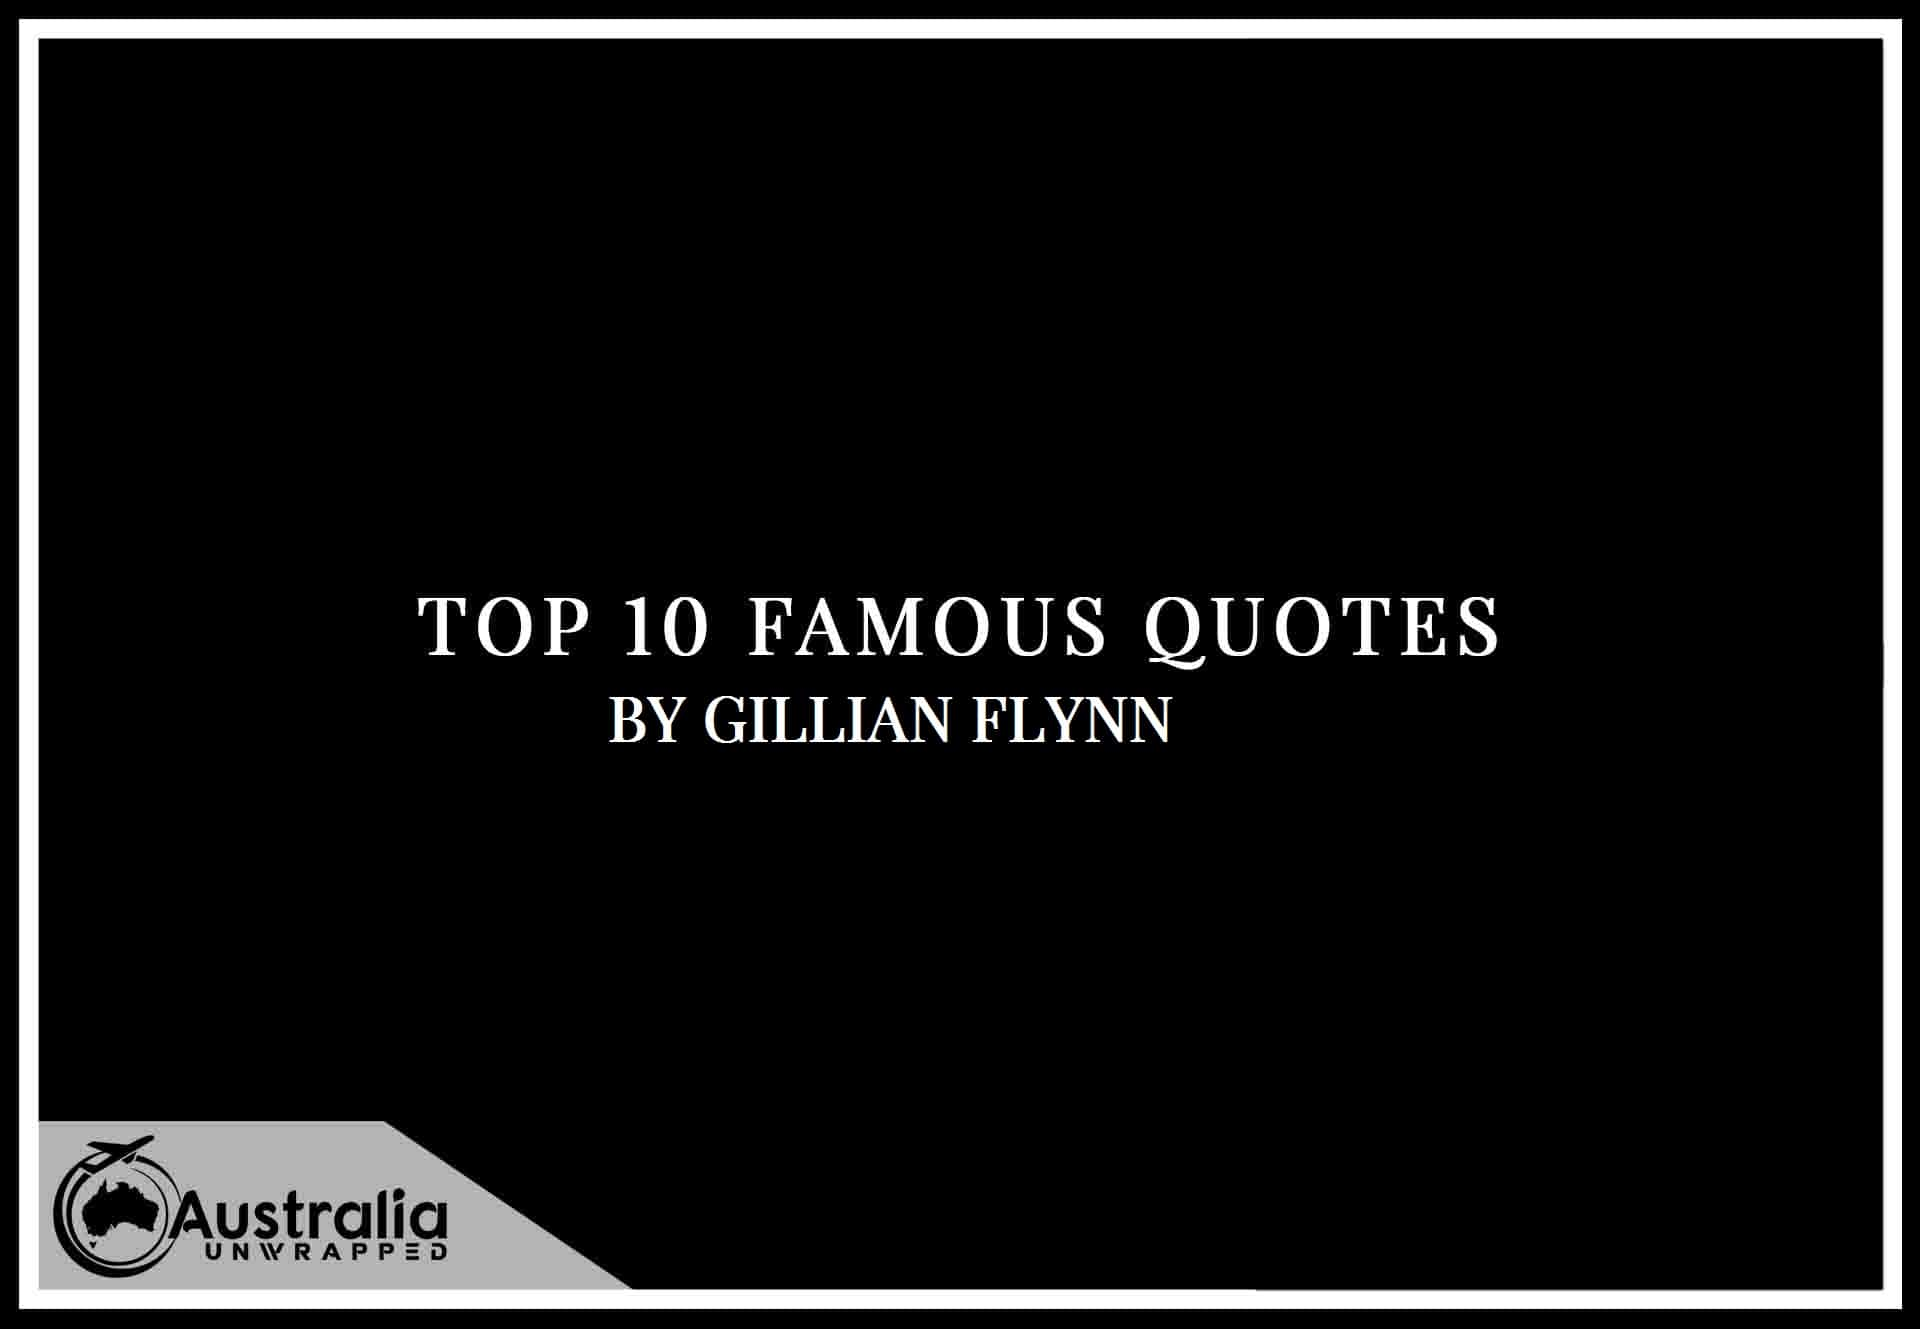 Gillian Flynn's Top 10 Popular and Famous Quotes